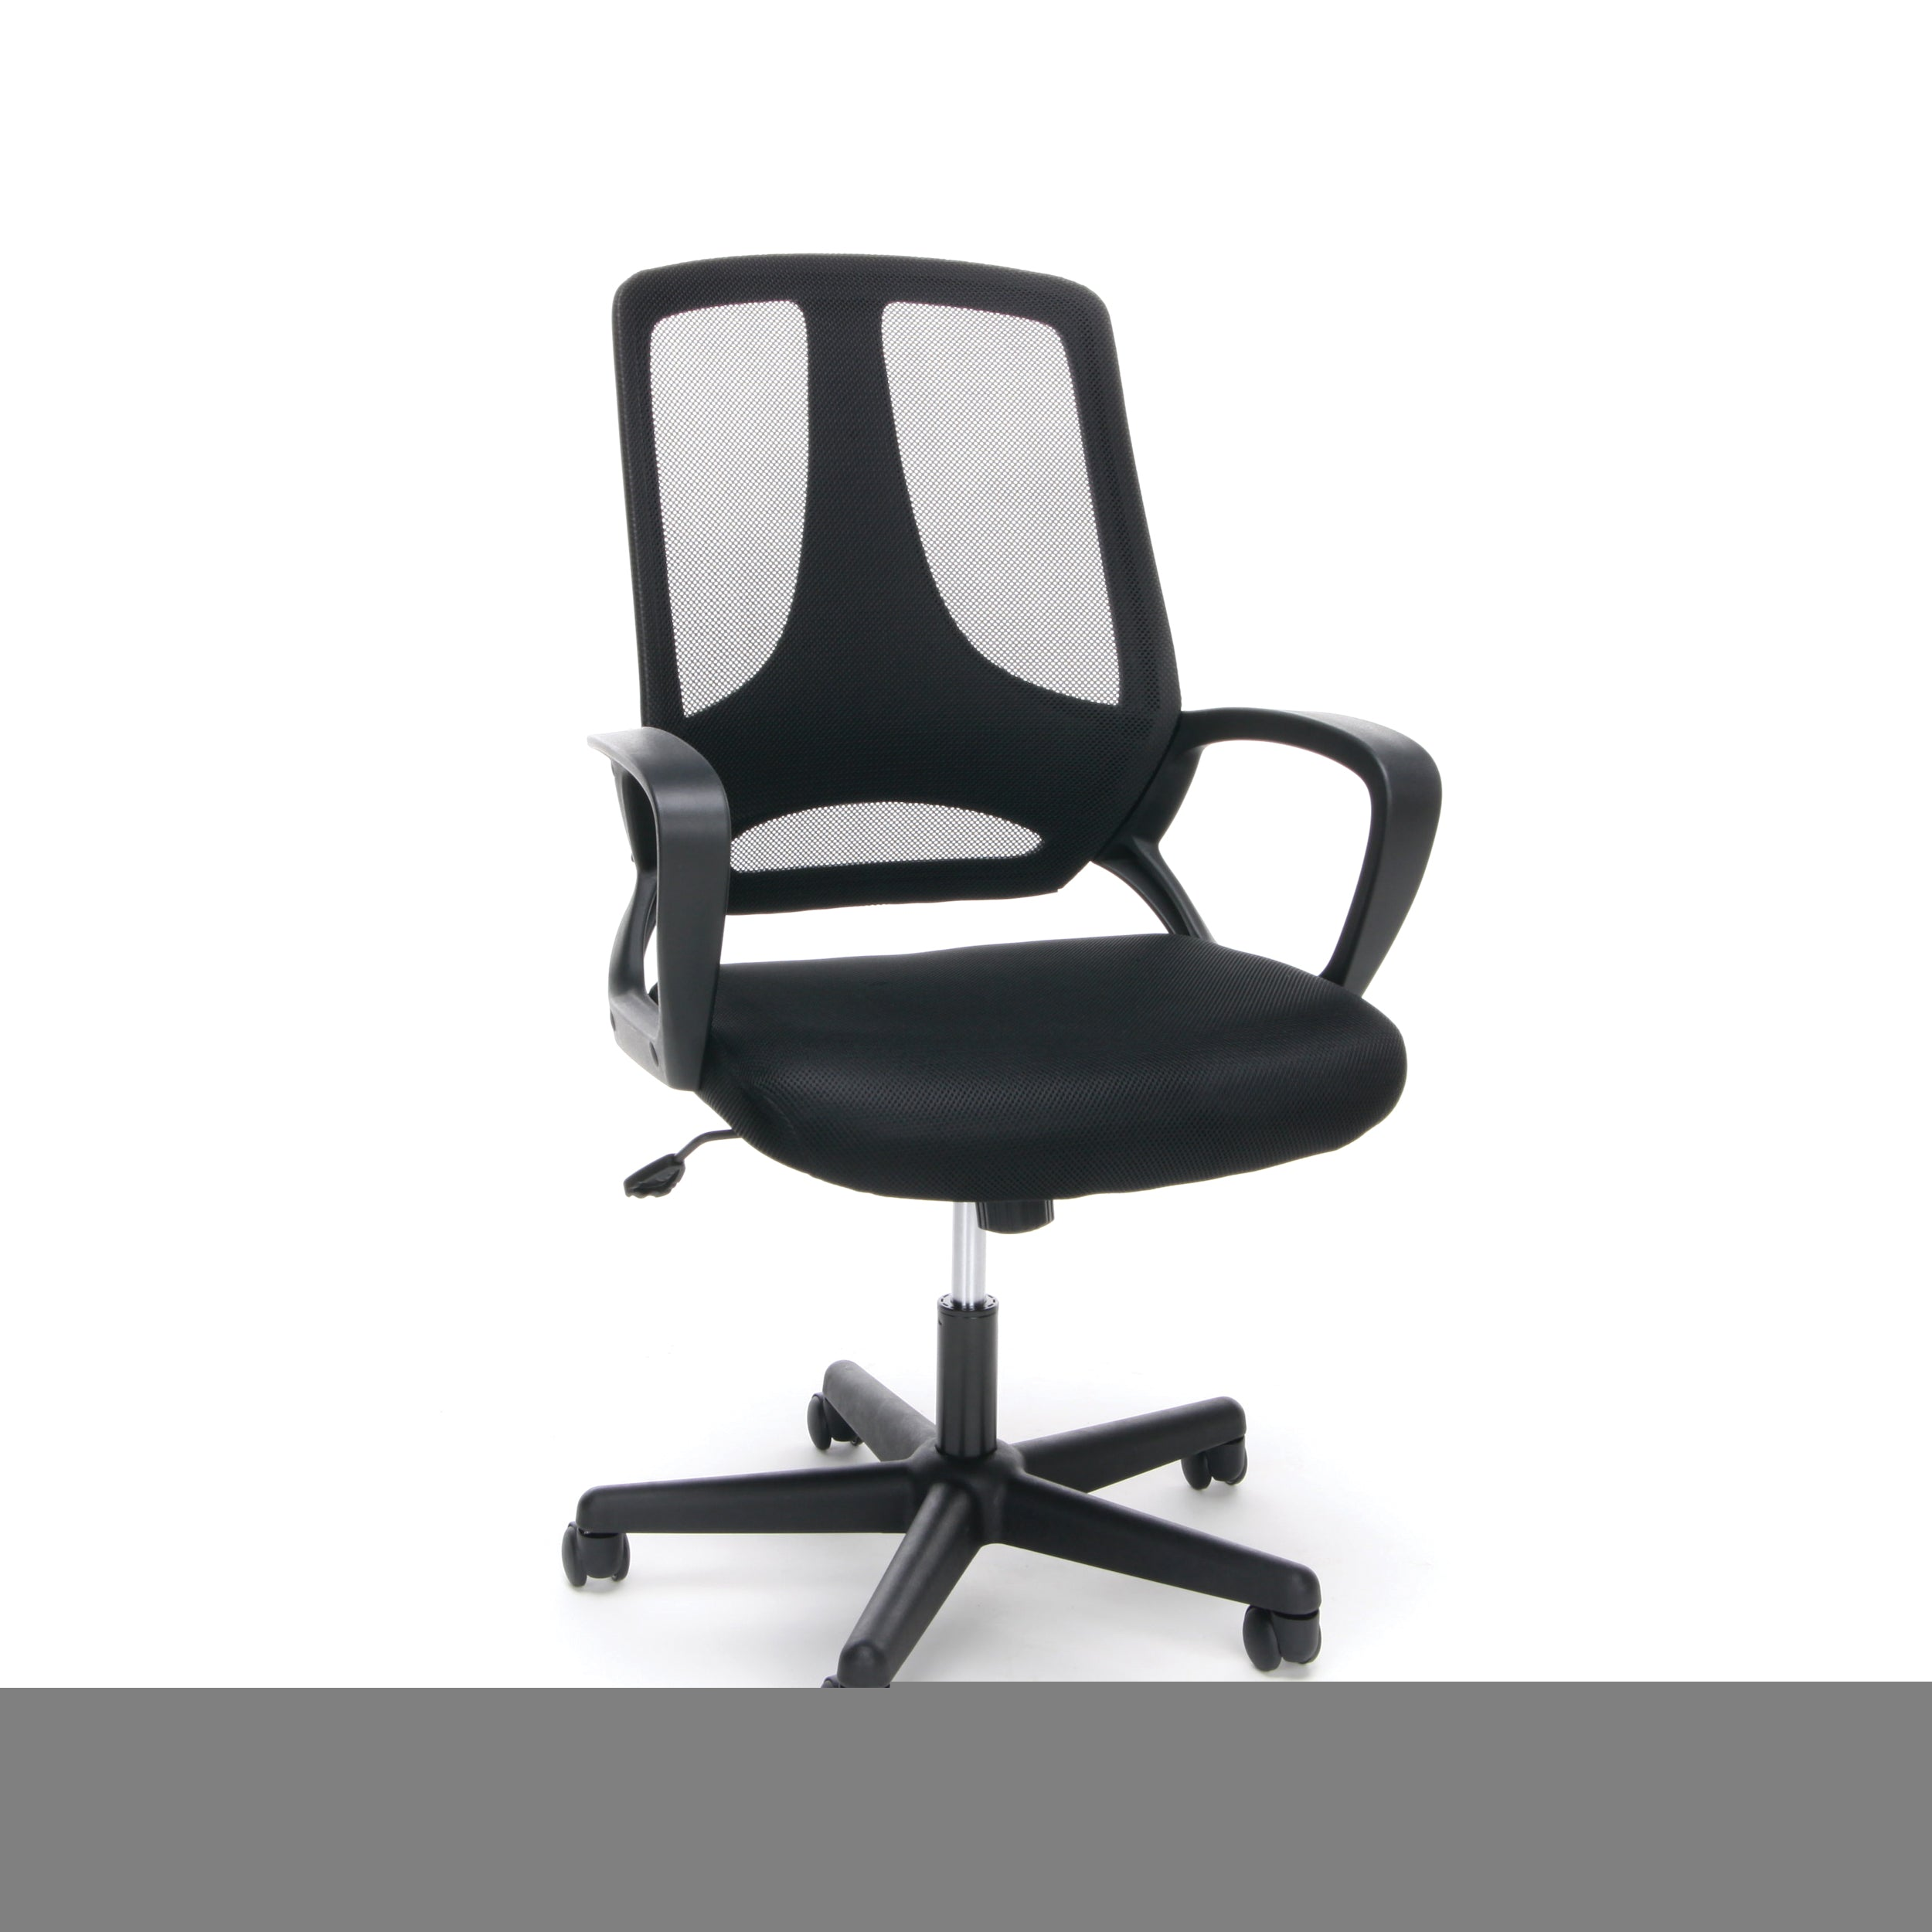 Model ESS-3040 Essentials by OFM Mesh Hi-Back Arms Chair